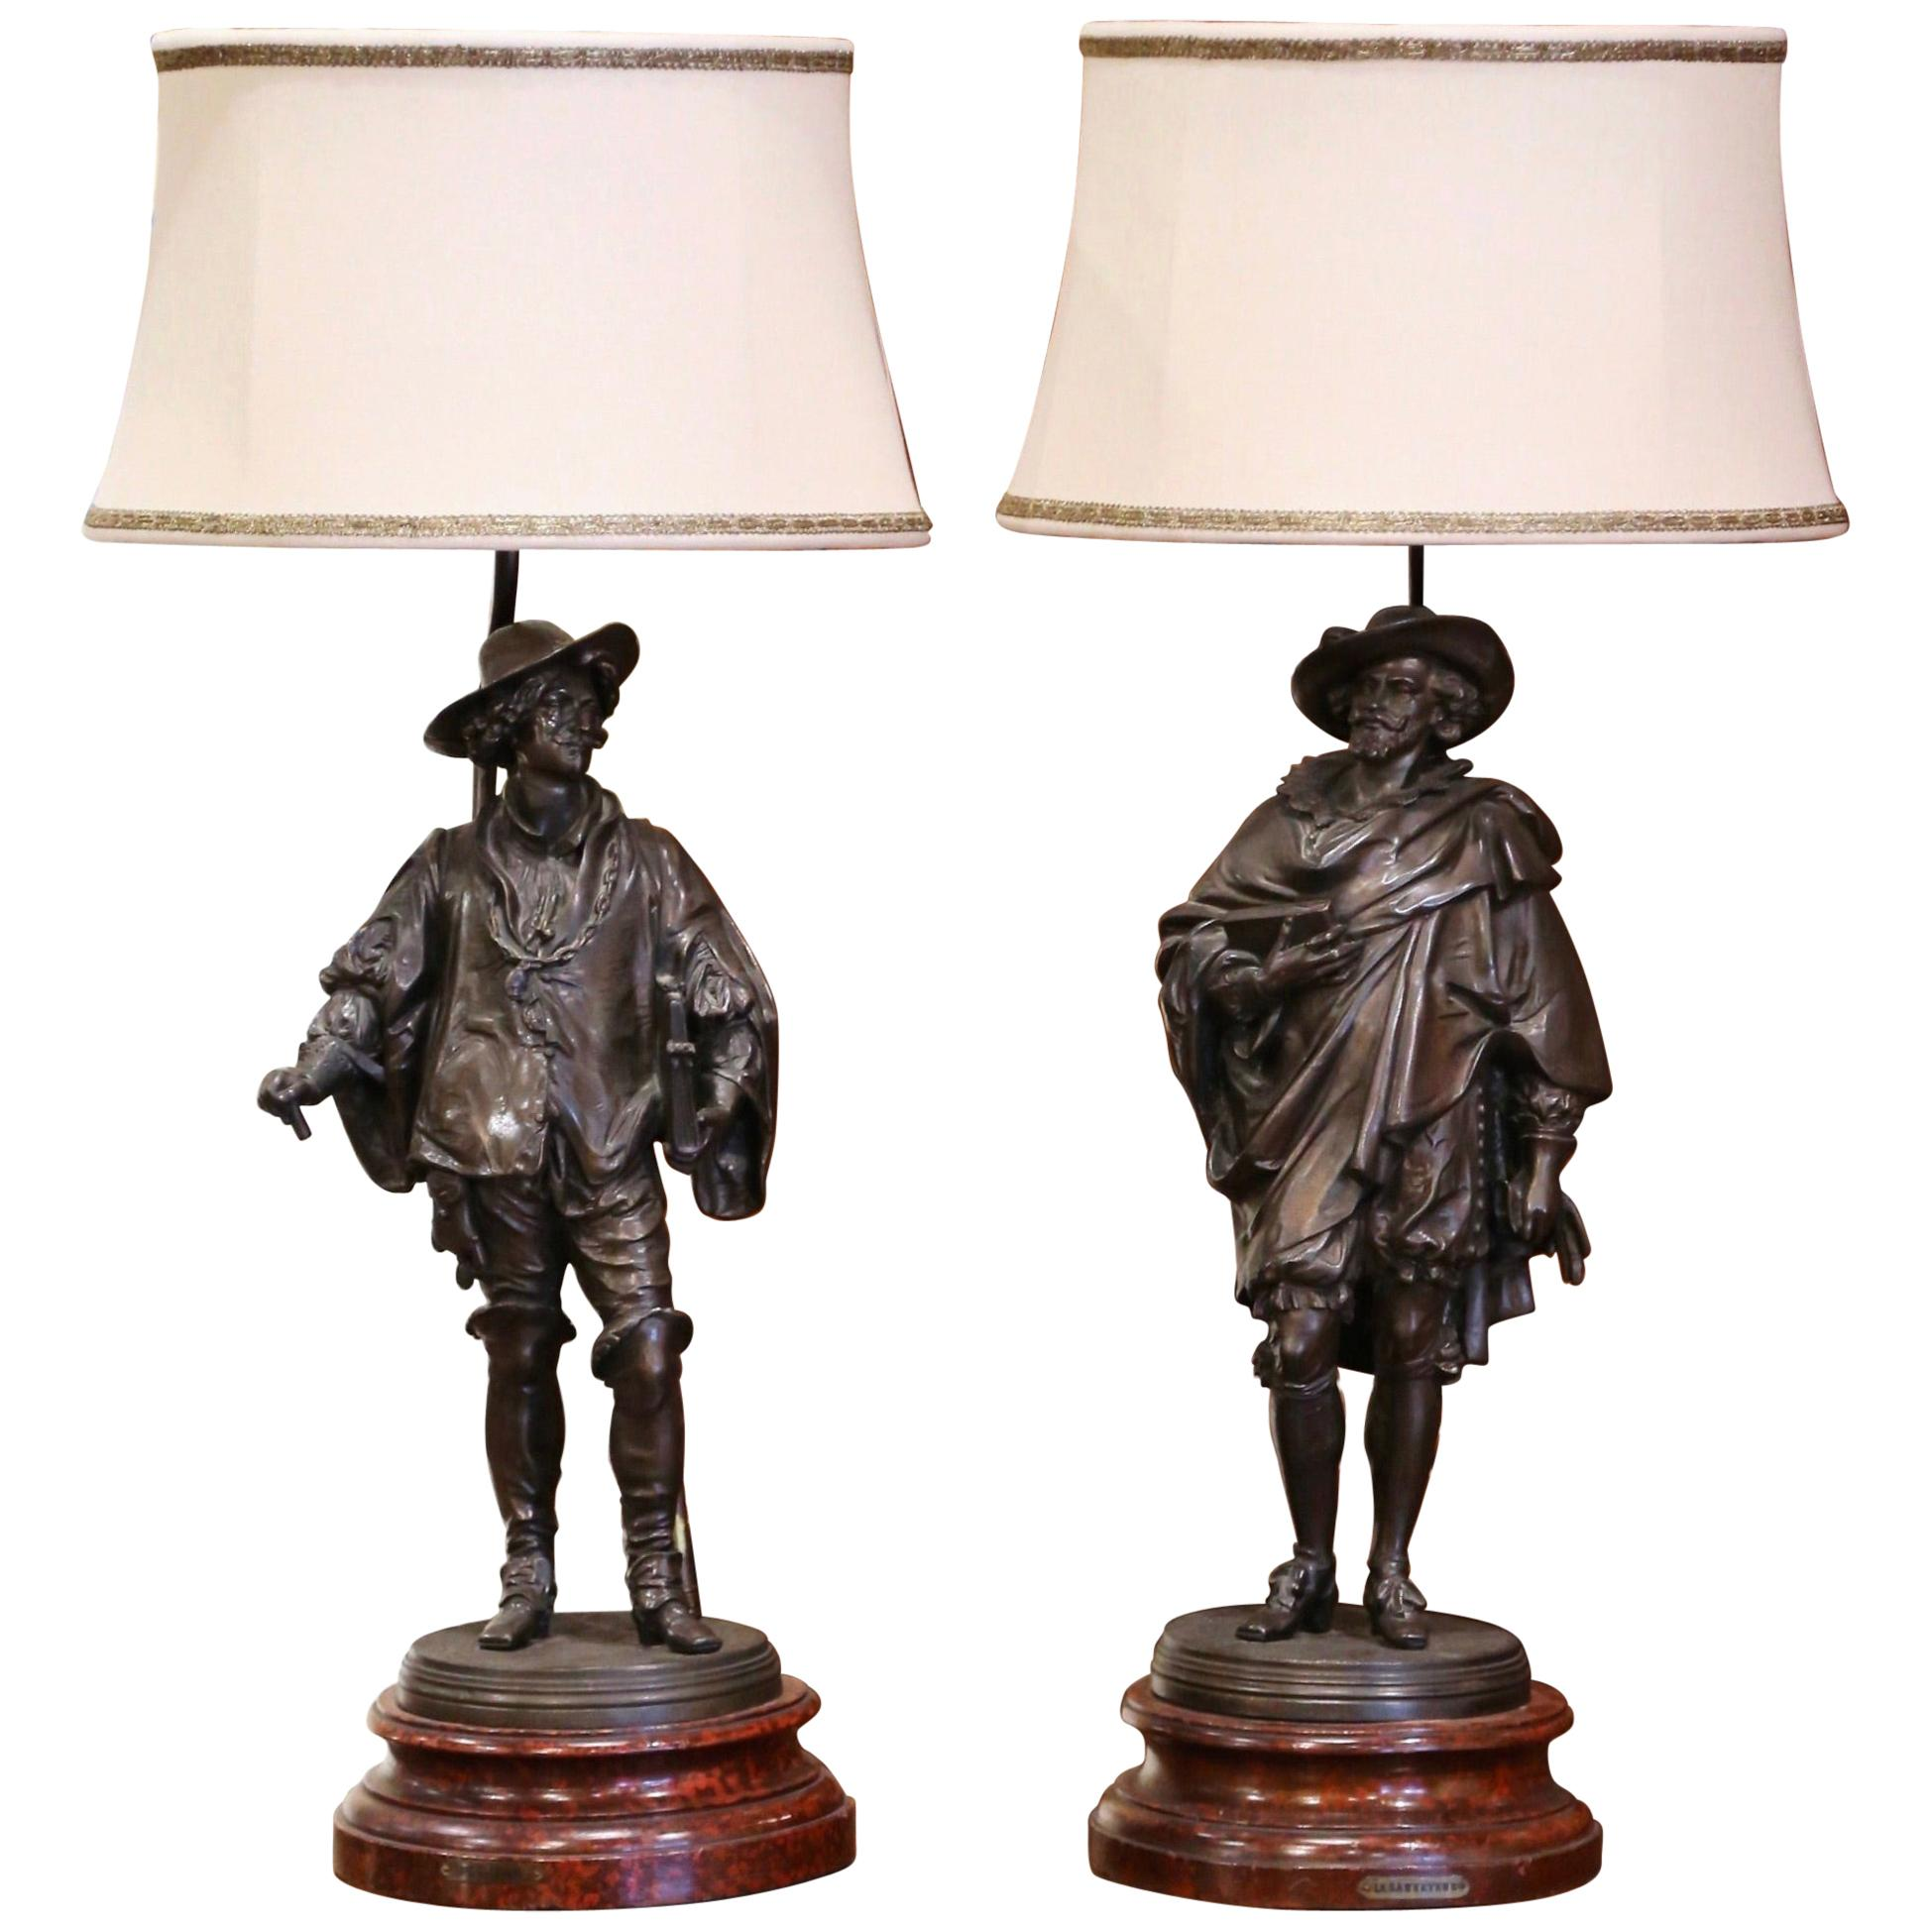 Pair of 19th Century French Spelter Renaissance Figures Made into Table Lamps